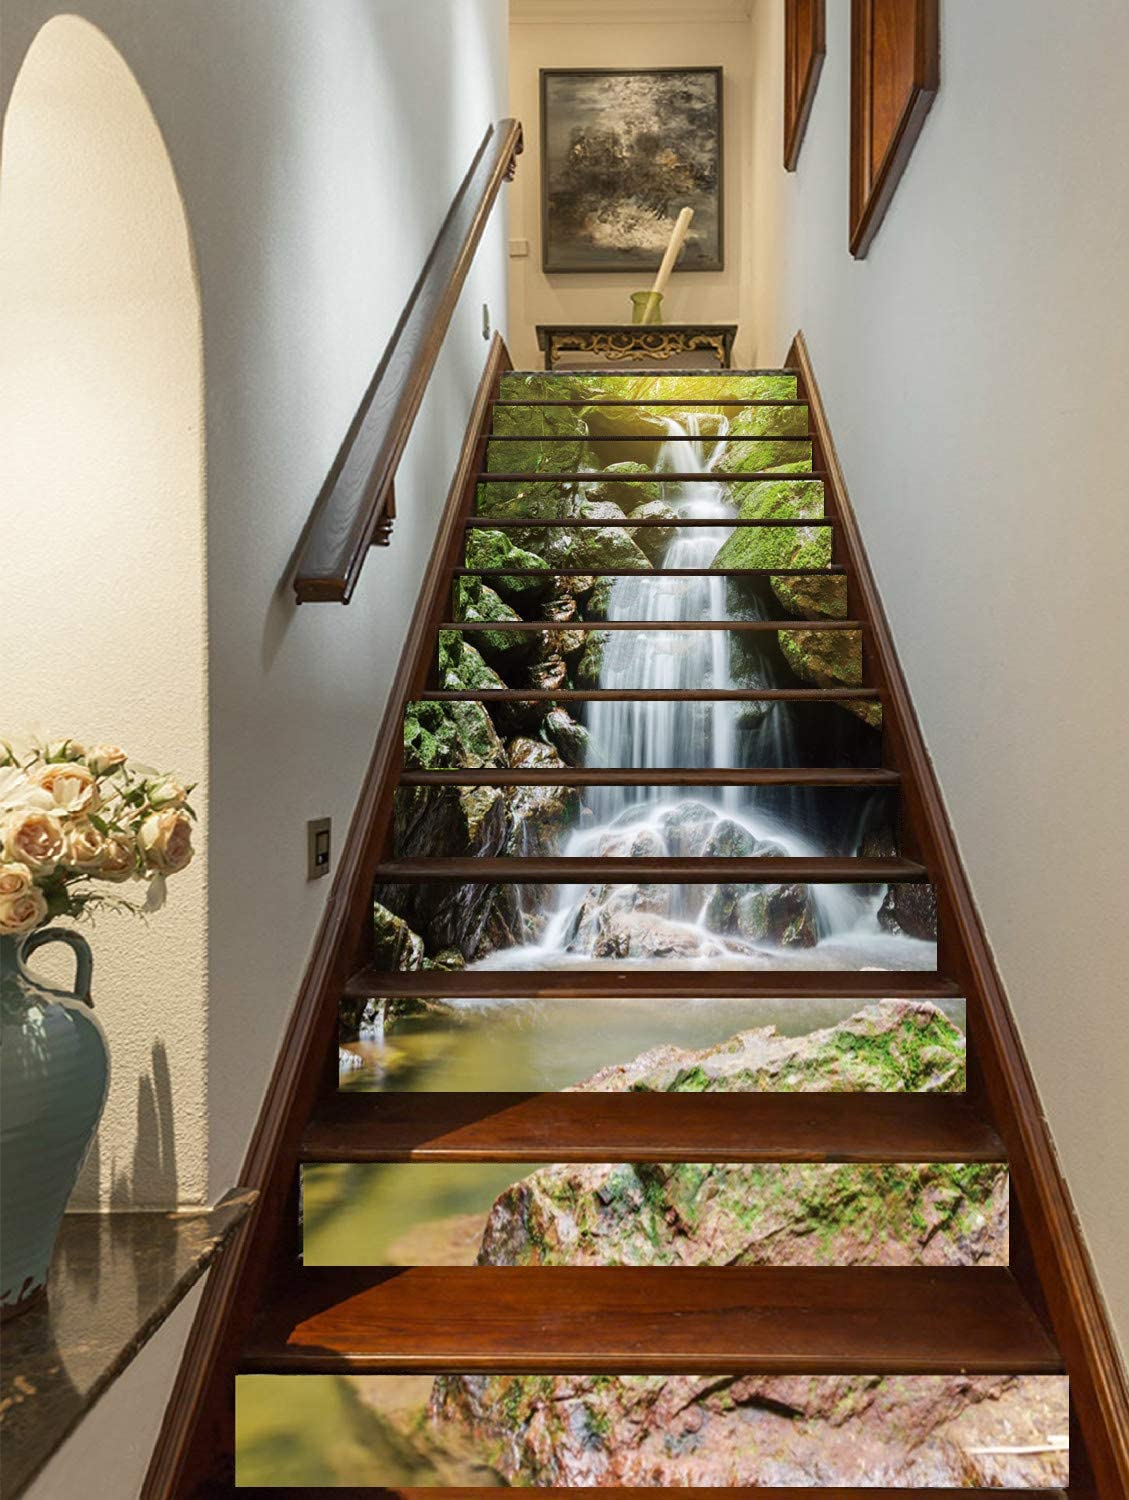 FLFK 3D Waterfalls Self-Adhesive Stairs Risers Natural Landscape Mural Vinyl Decal Wallpaper Stickers Decor Decals 39.3Inch x7.08Inch x 13PCS